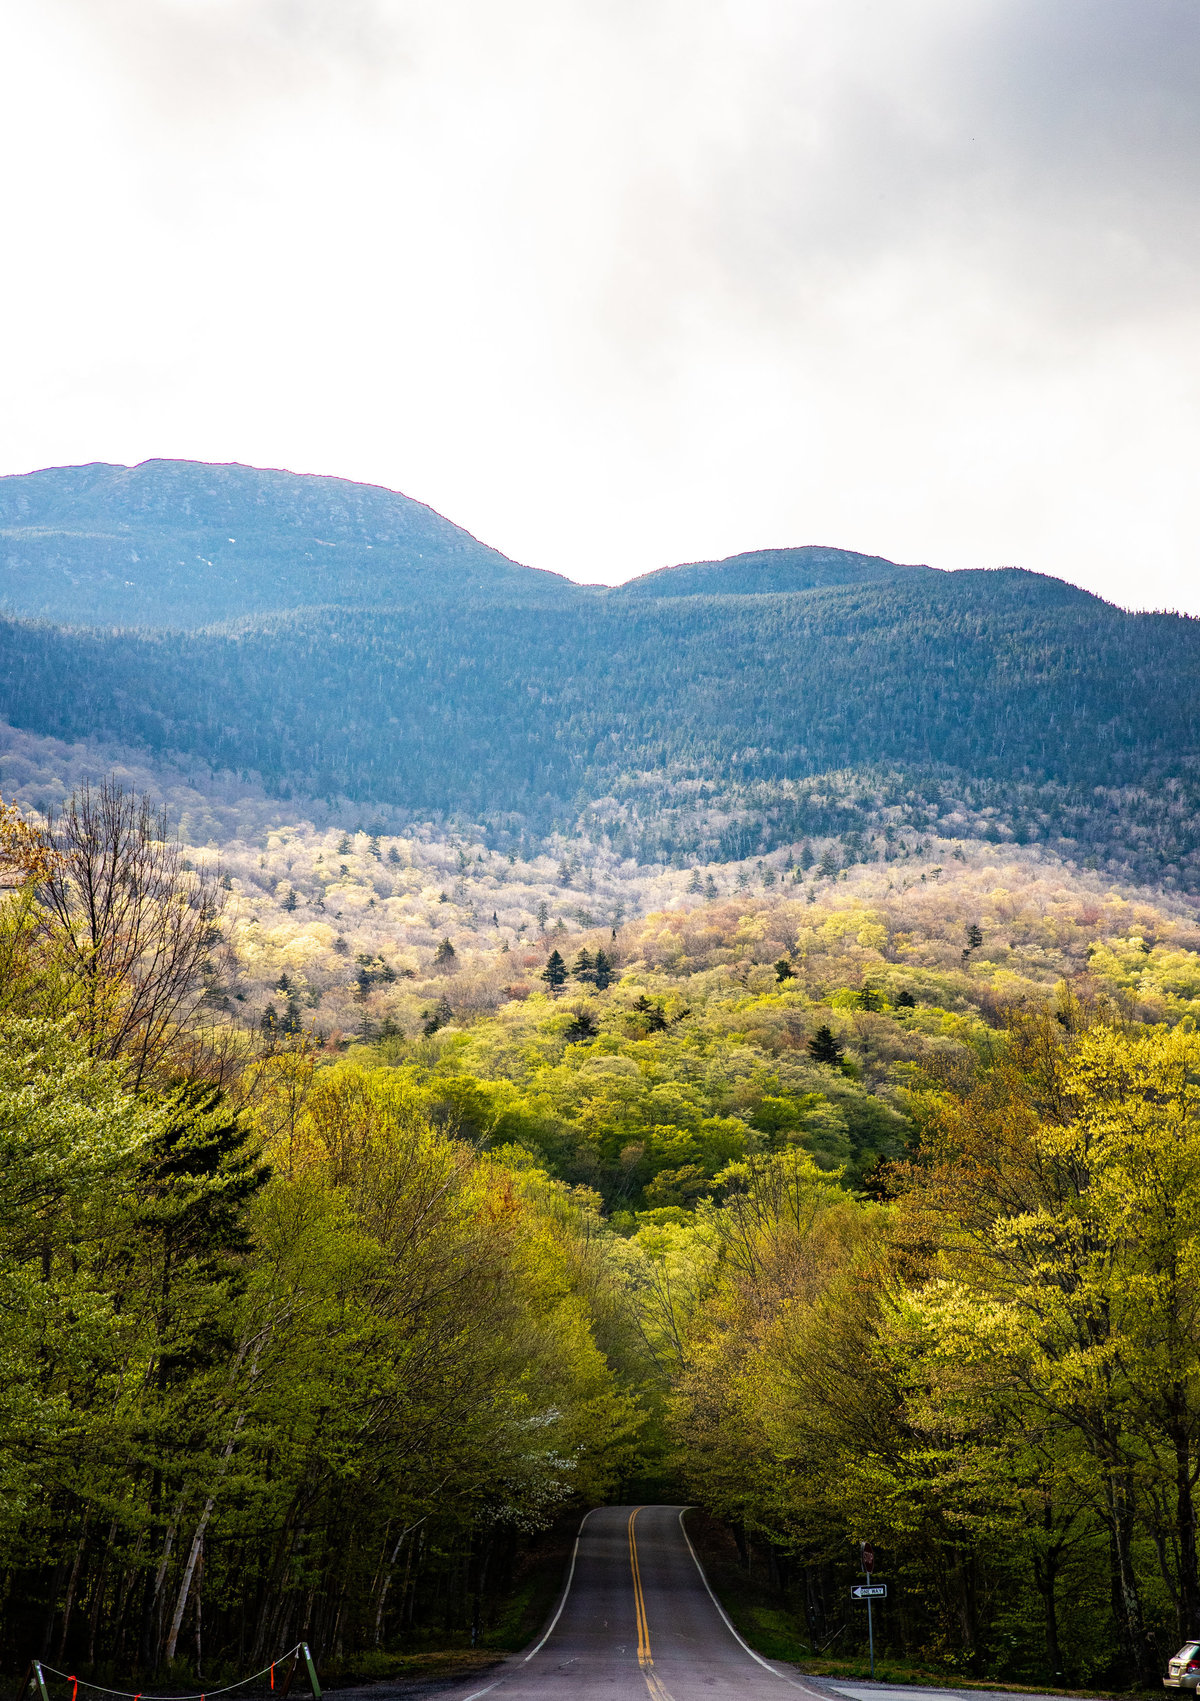 Hall-Potvin Photography Vermont Spring Landscape Photographer-22